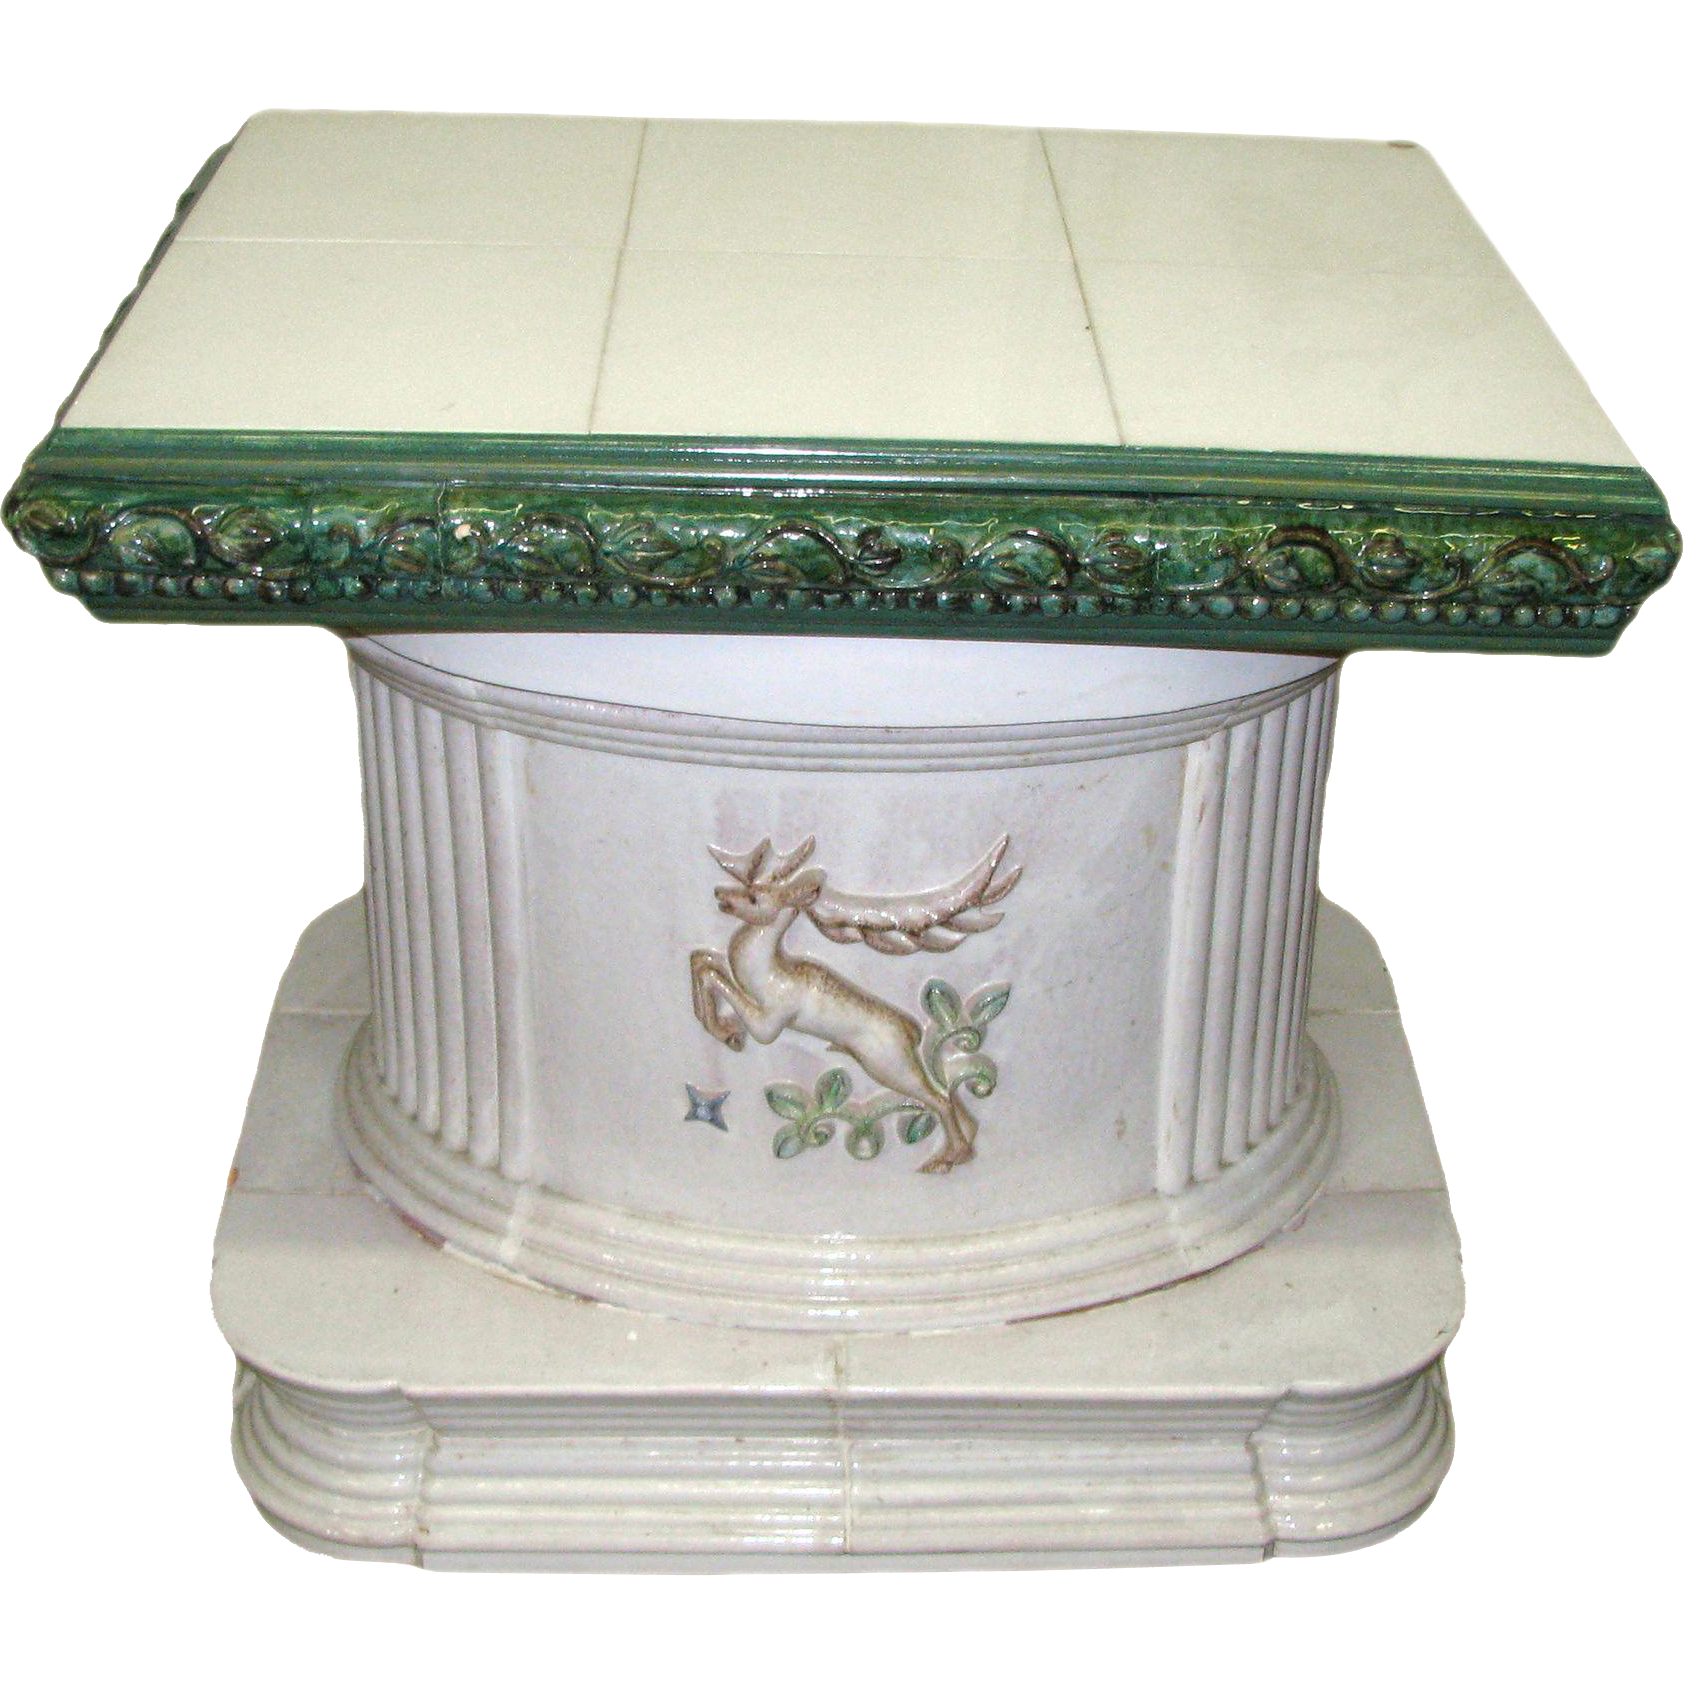 Large scale enameled ceramic plant base